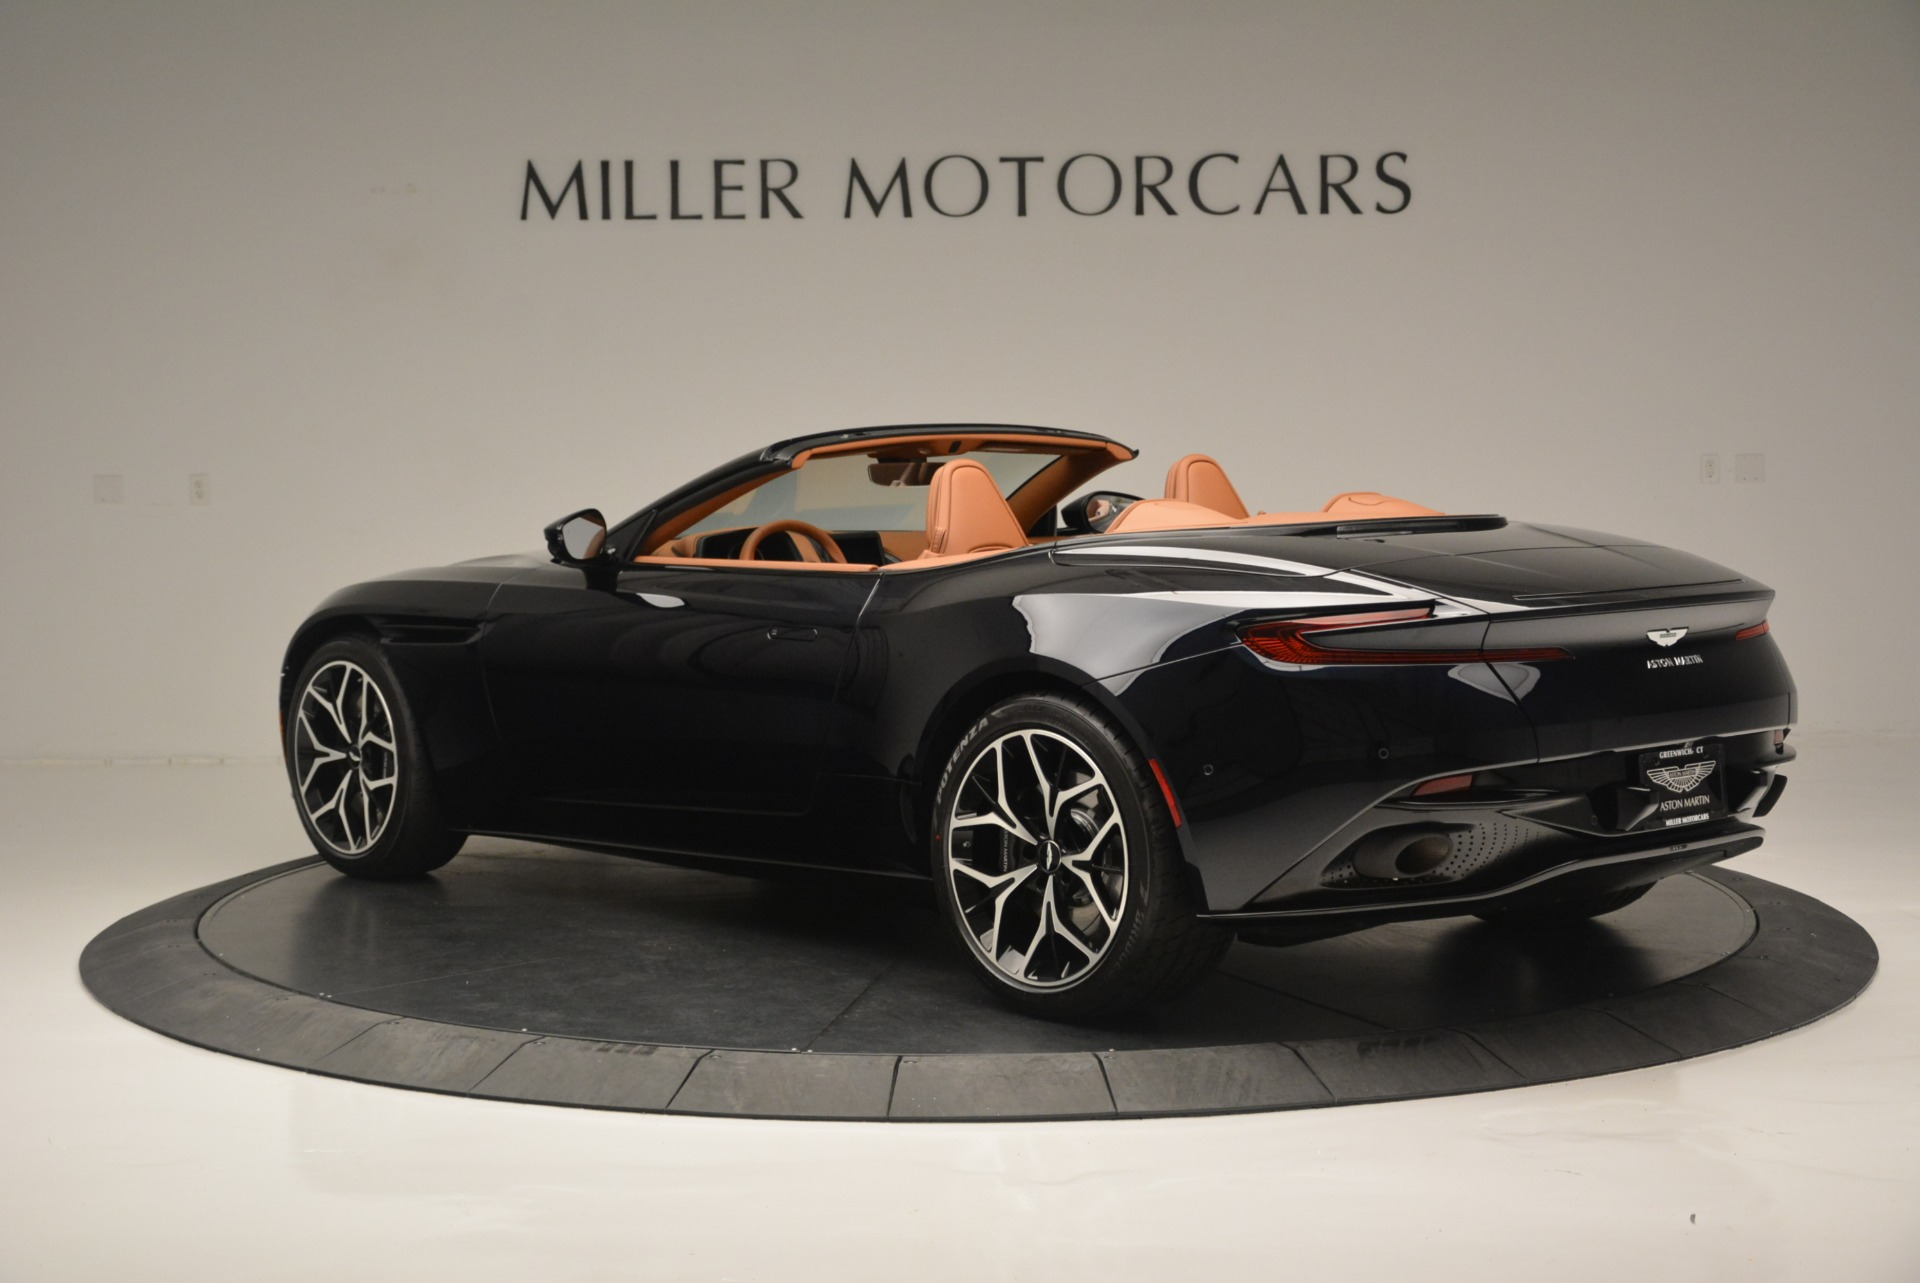 New 2019 Aston Martin DB11 Volante Volante For Sale In Westport, CT 2450_p4